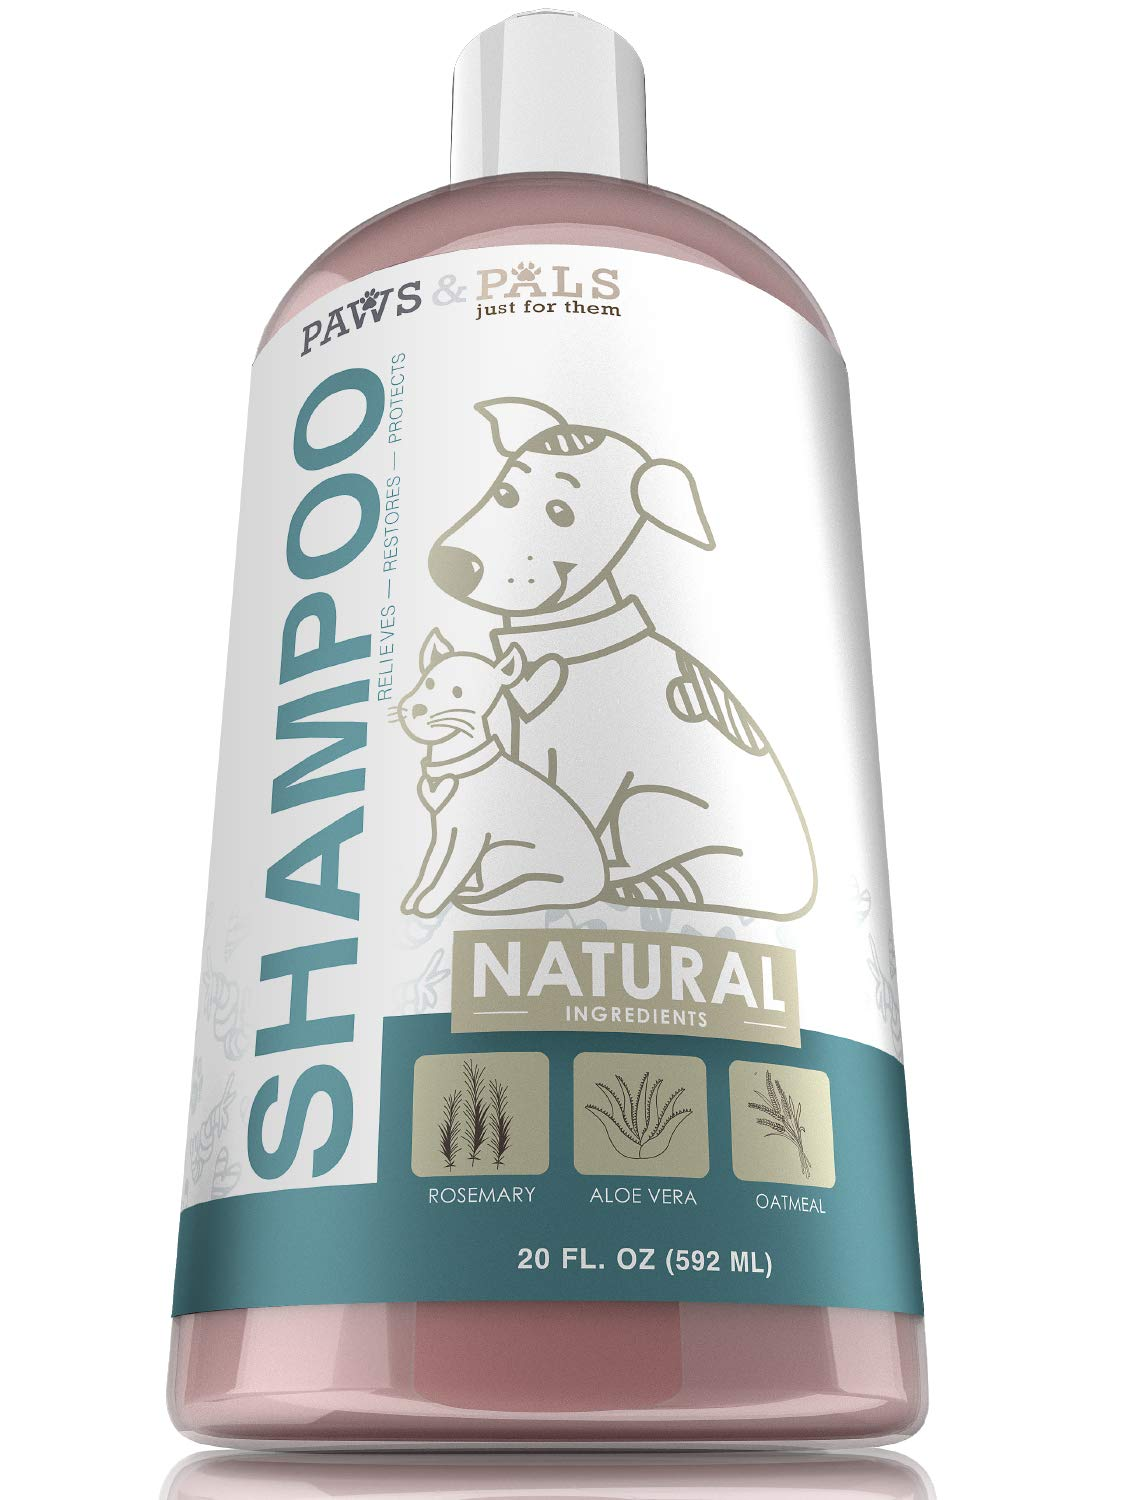 Paws & Pals 592ml Natural Dog-Shampoo And Conditioner - 20oz Medicated Clinical Vet Formula Wash For All Pets Puppy & Cats - Best Pet Odour Eliminator OxGord PTSH-01-16